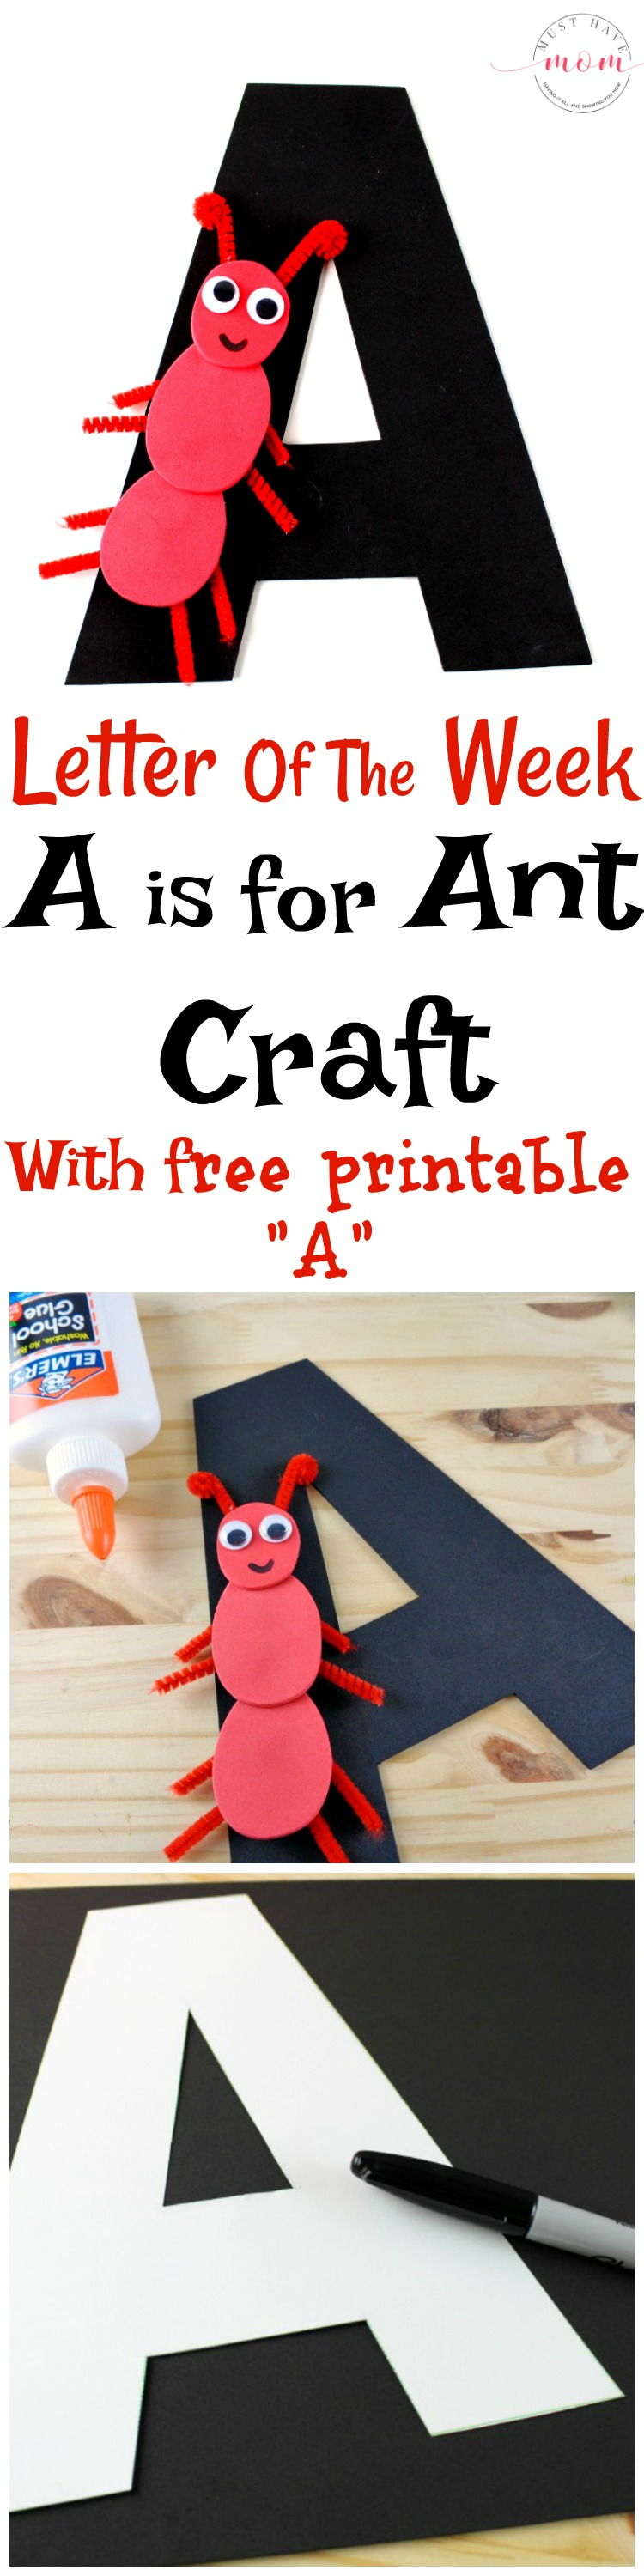 "Letter of the Week preschool activities! Letter recognition Letter A craft idea with free printable letter ""A"""